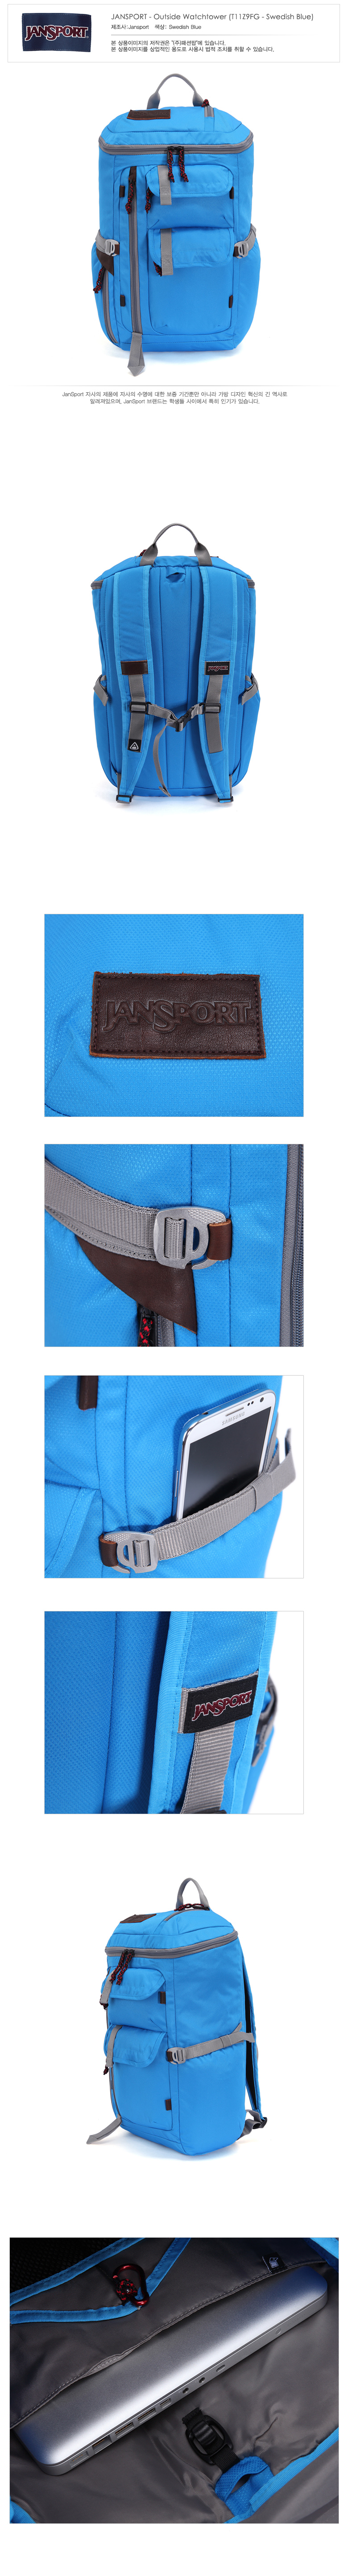 [잔스포츠]JANSPORT - Outside Watchtower (T11Z9FG - Swedish Blue)